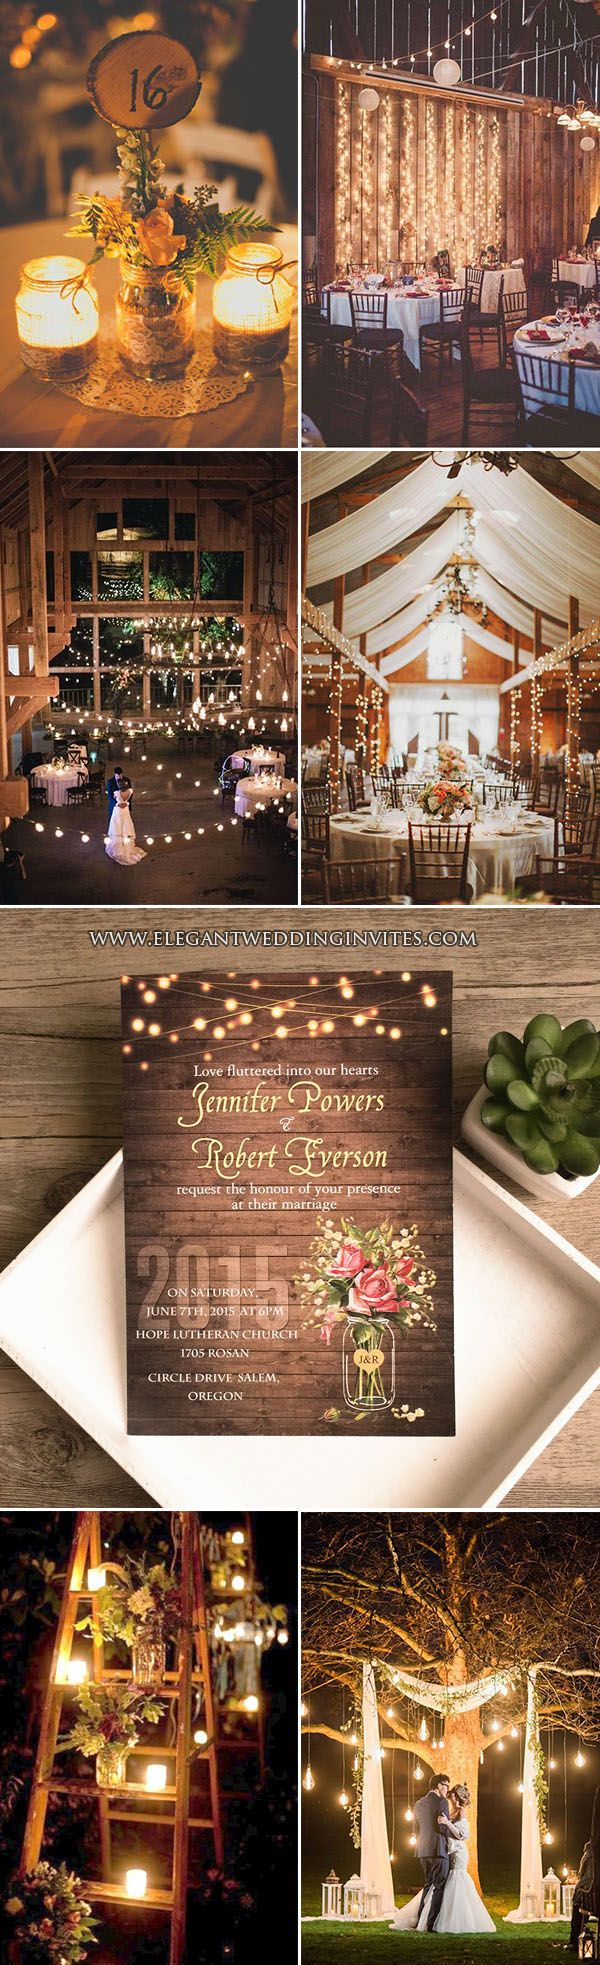 7 Chic Rustic Wedding Themes with Matching